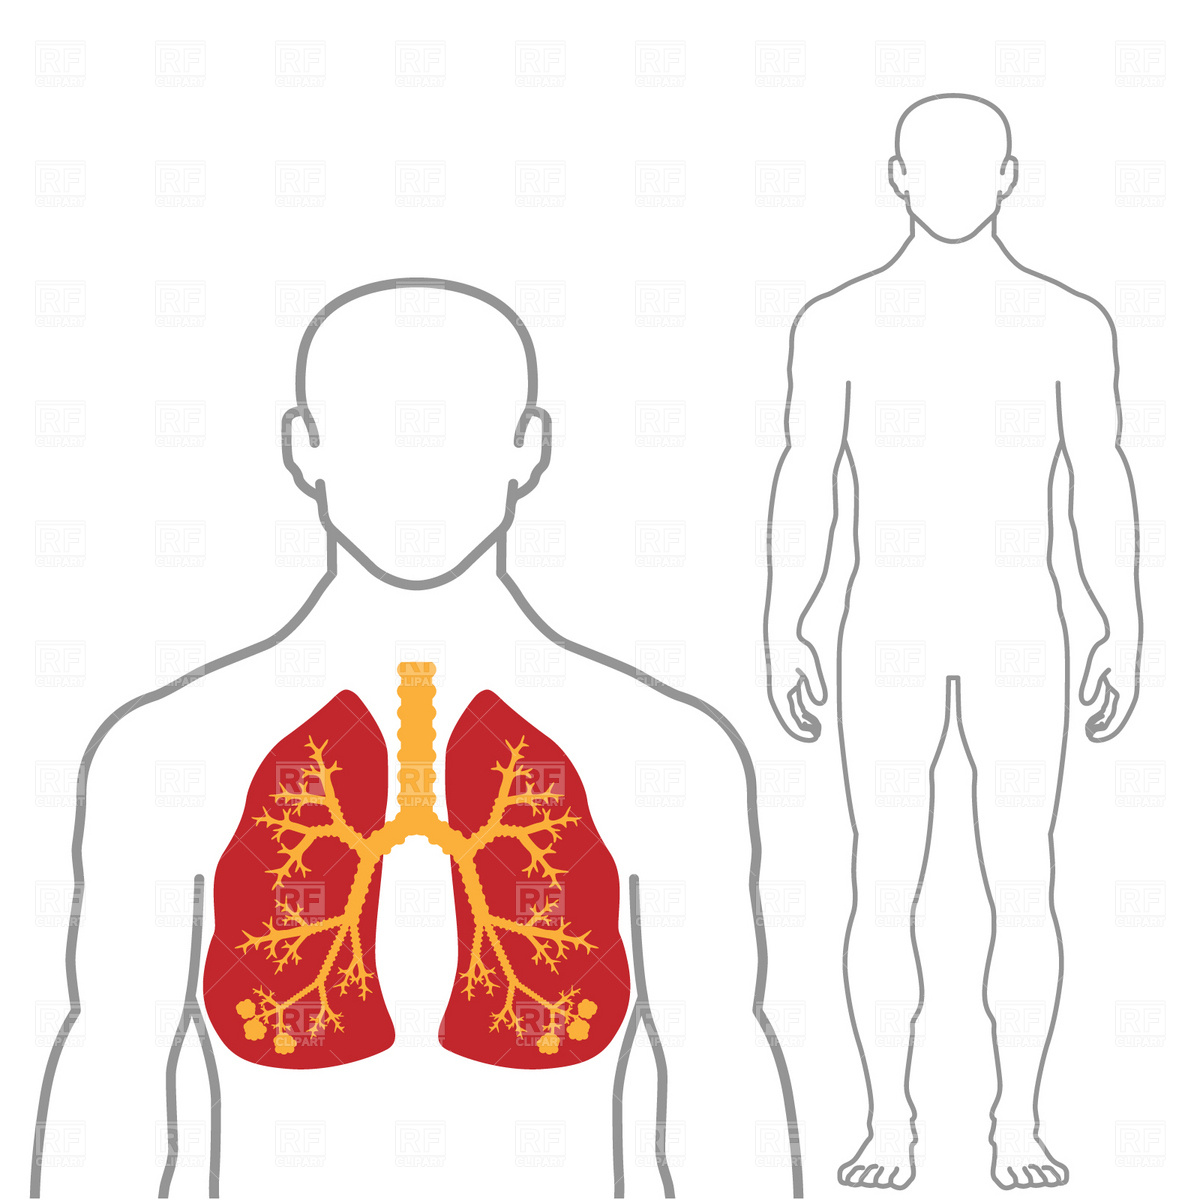 human-body-picture-outline-of-human-body-cells.jpg